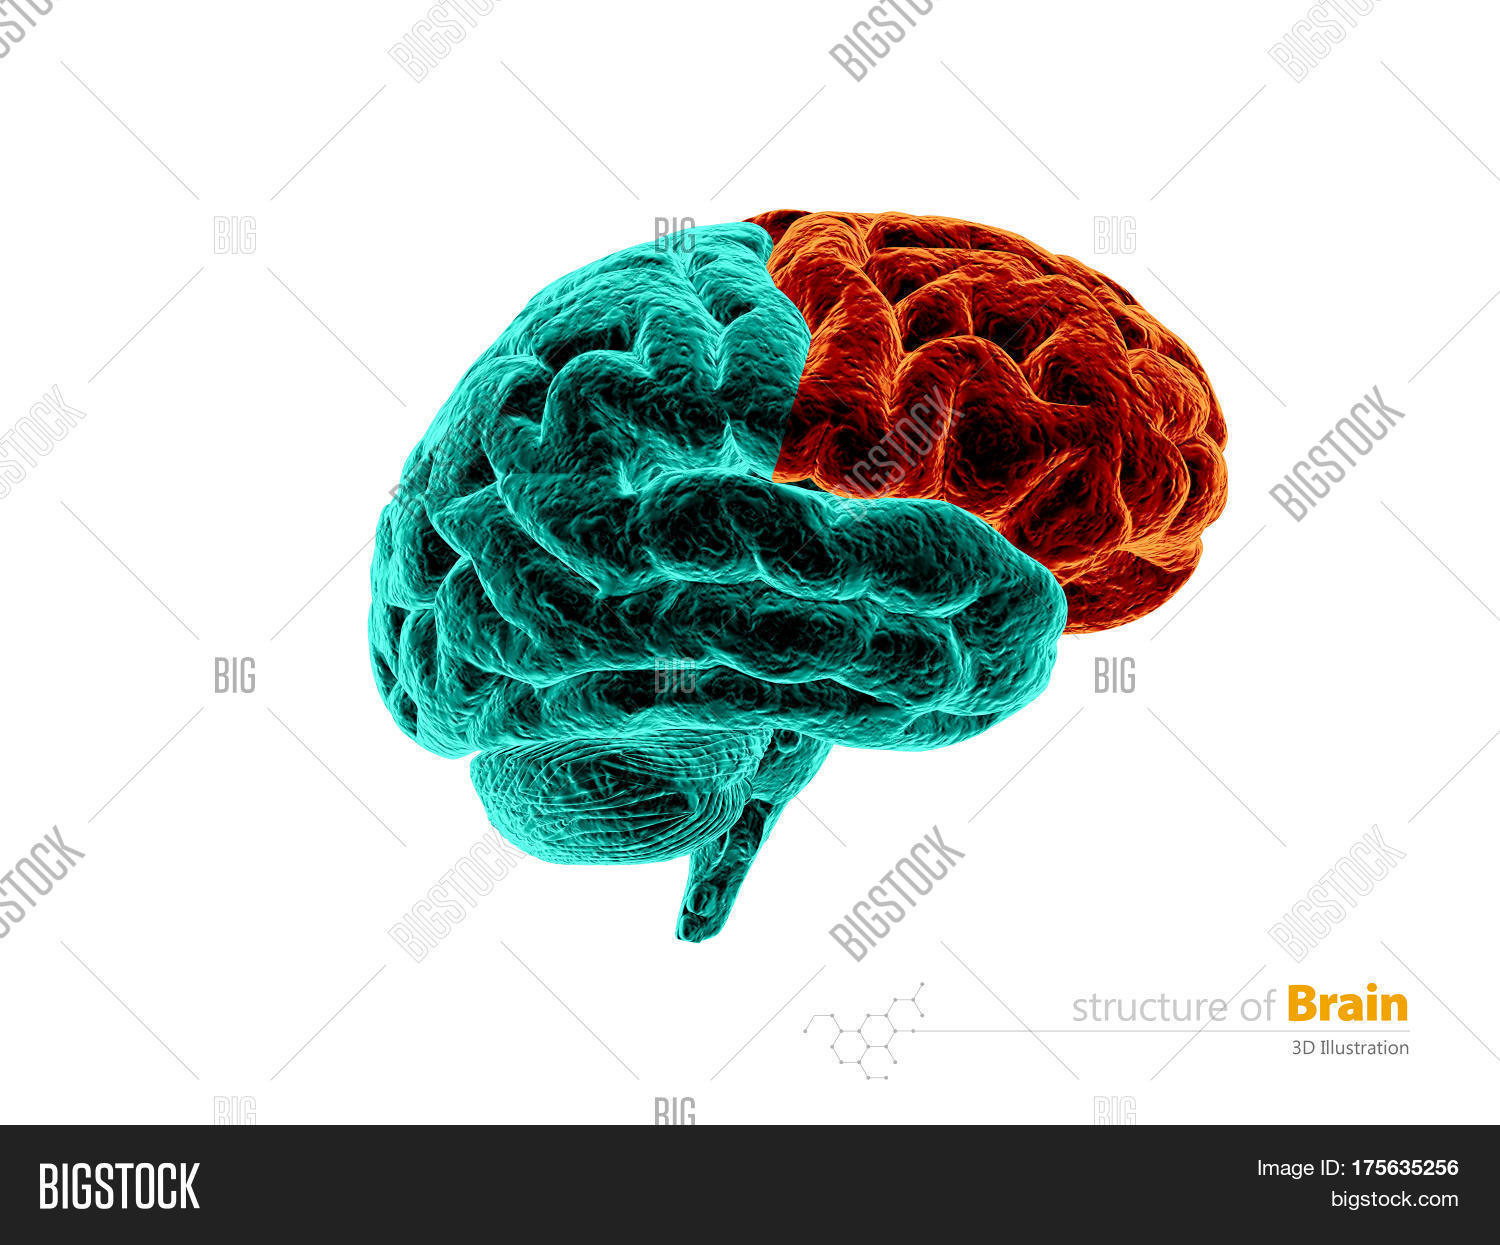 Human Brain Frontal Image & Photo (Free Trial) | Bigstock